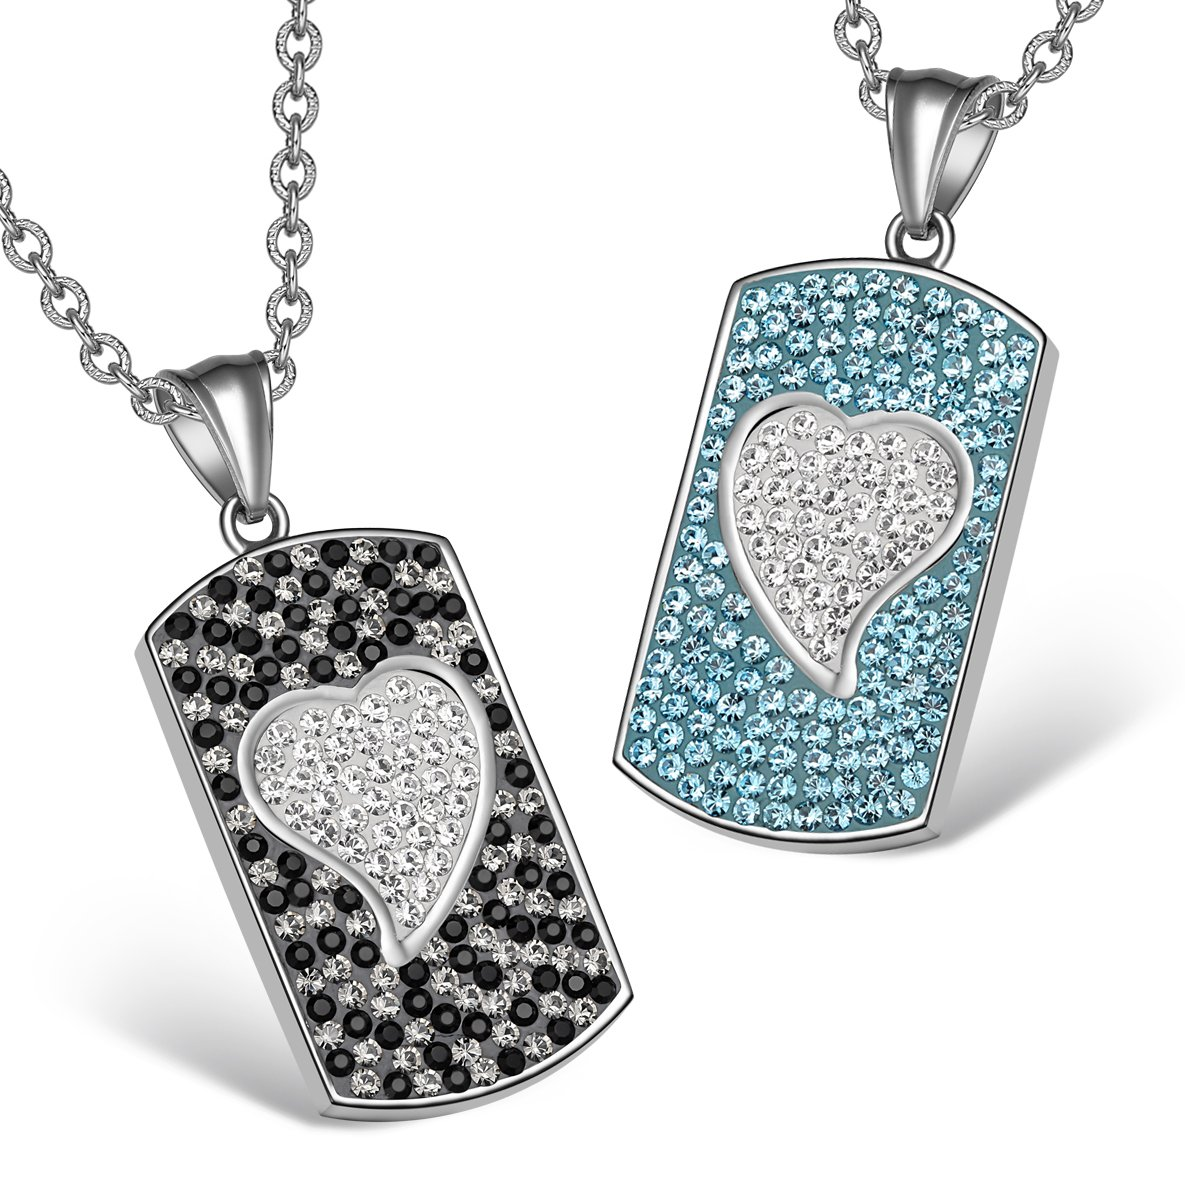 Magic Hearts Austrian Crystal Love Couples or Best Friends Tag Aqua Blue White Jet Black Necklaces